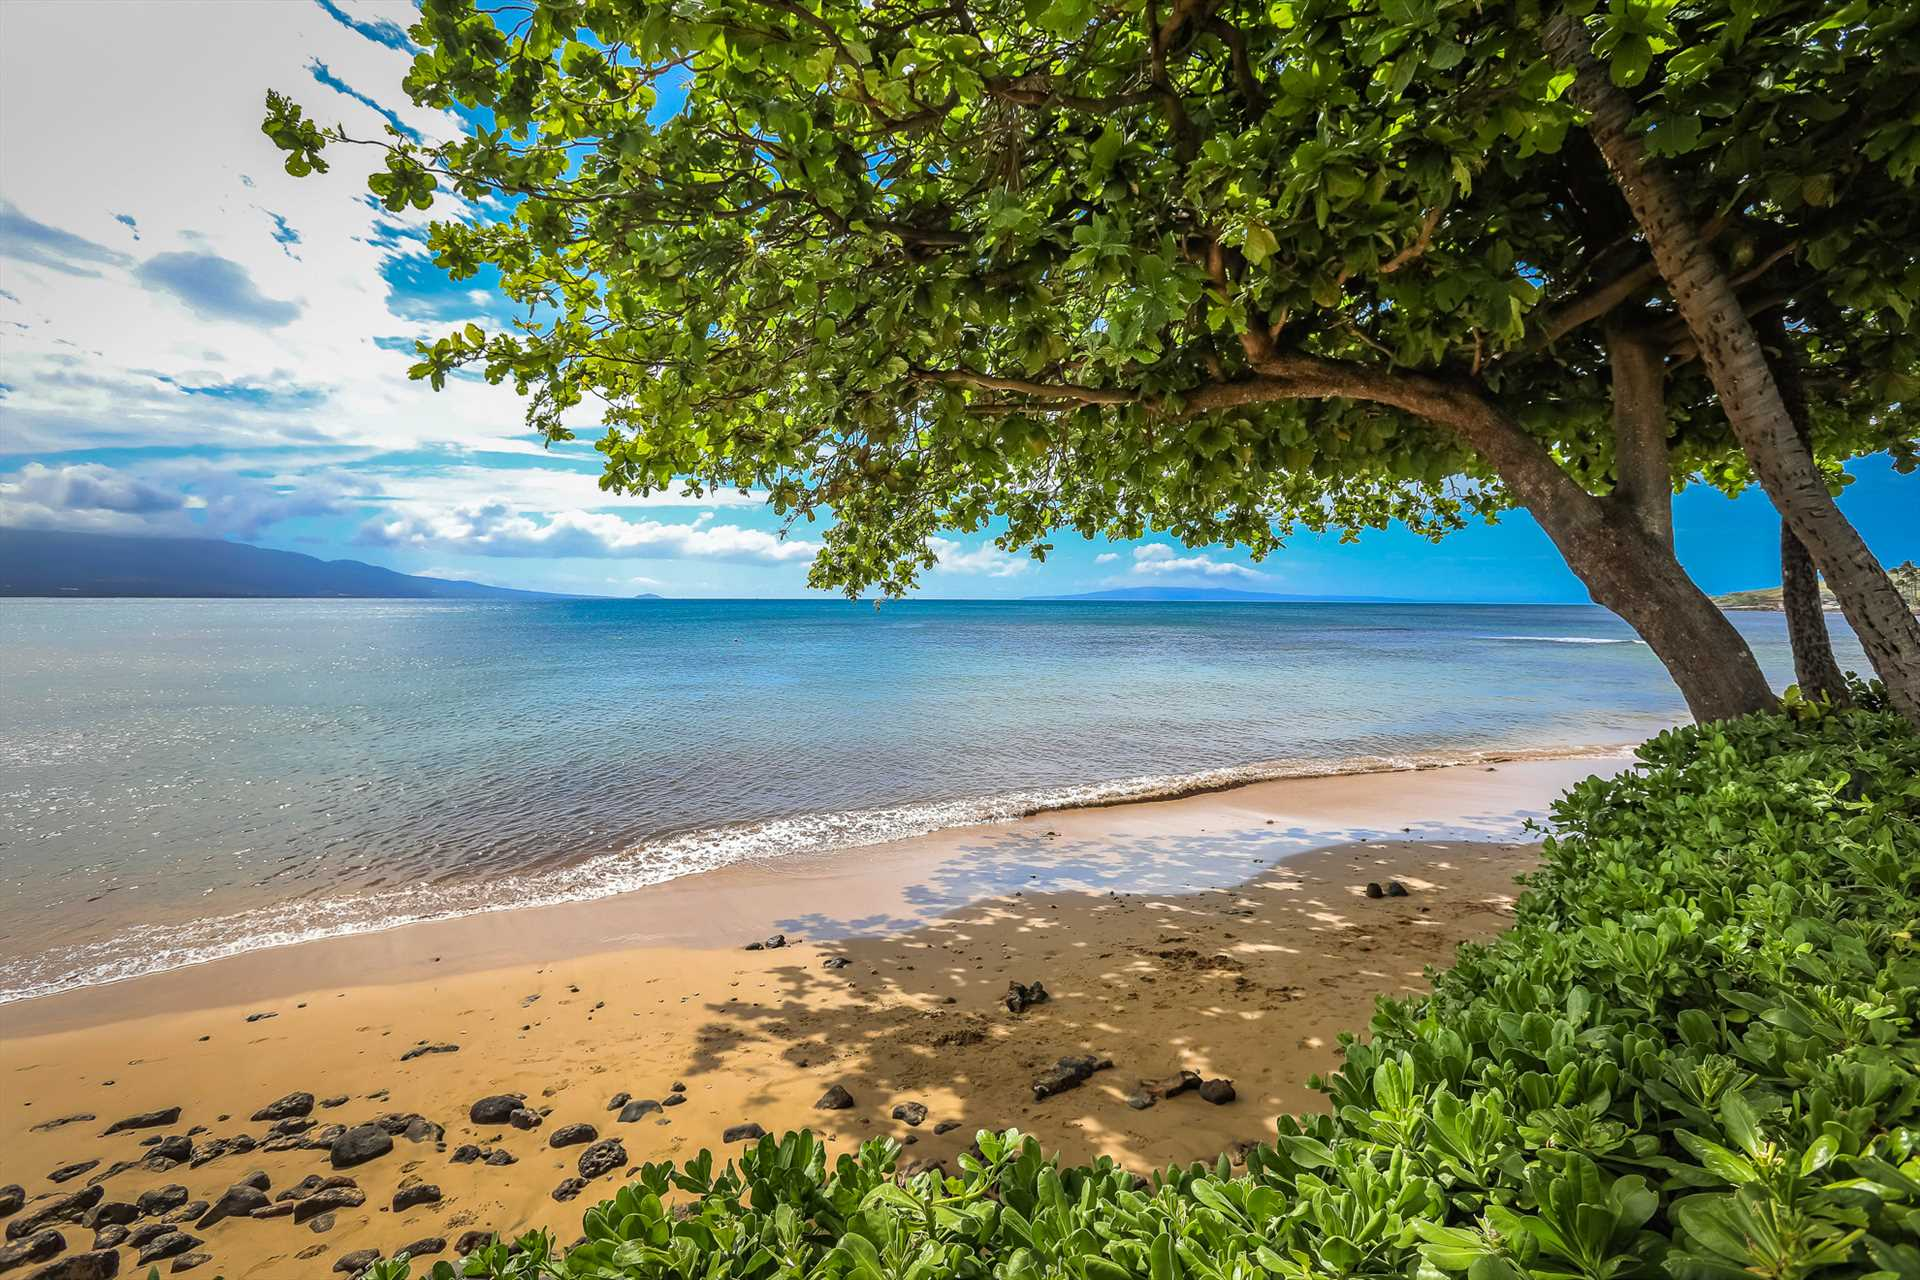 Walk miles along the shore of Maalaea Bay down to Maalaea Ha